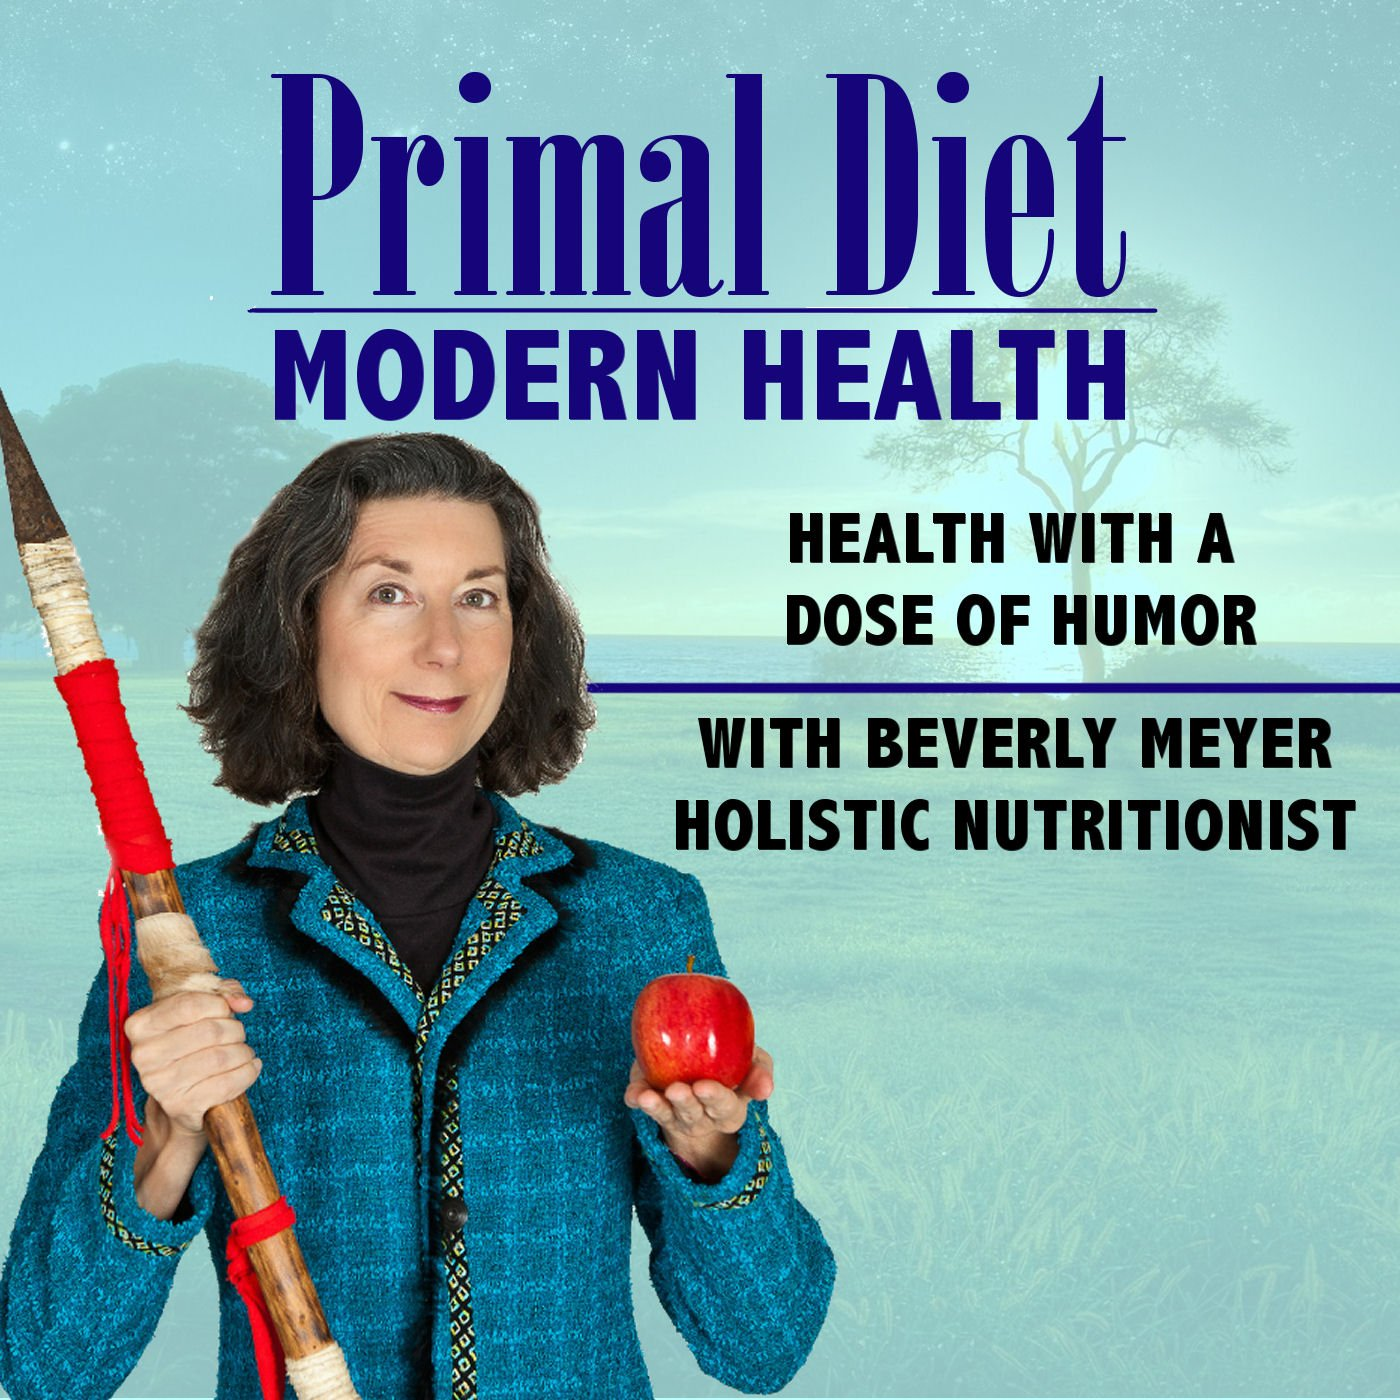 Primal Diet - Modern Health podcast on anxiety